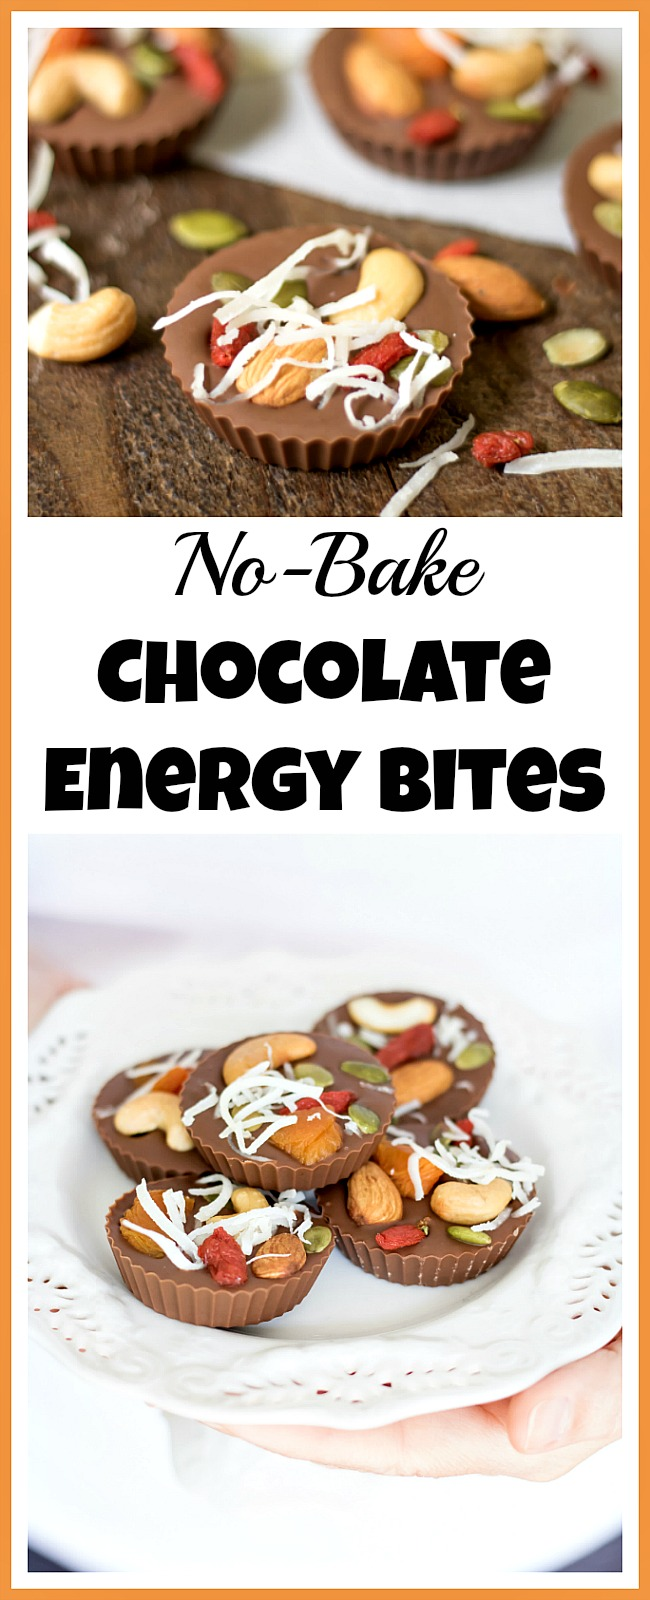 Want to make an easy, delicious snack that will give you a quick burst of energy? Then you have to make these no-bake chocolate energy bites!